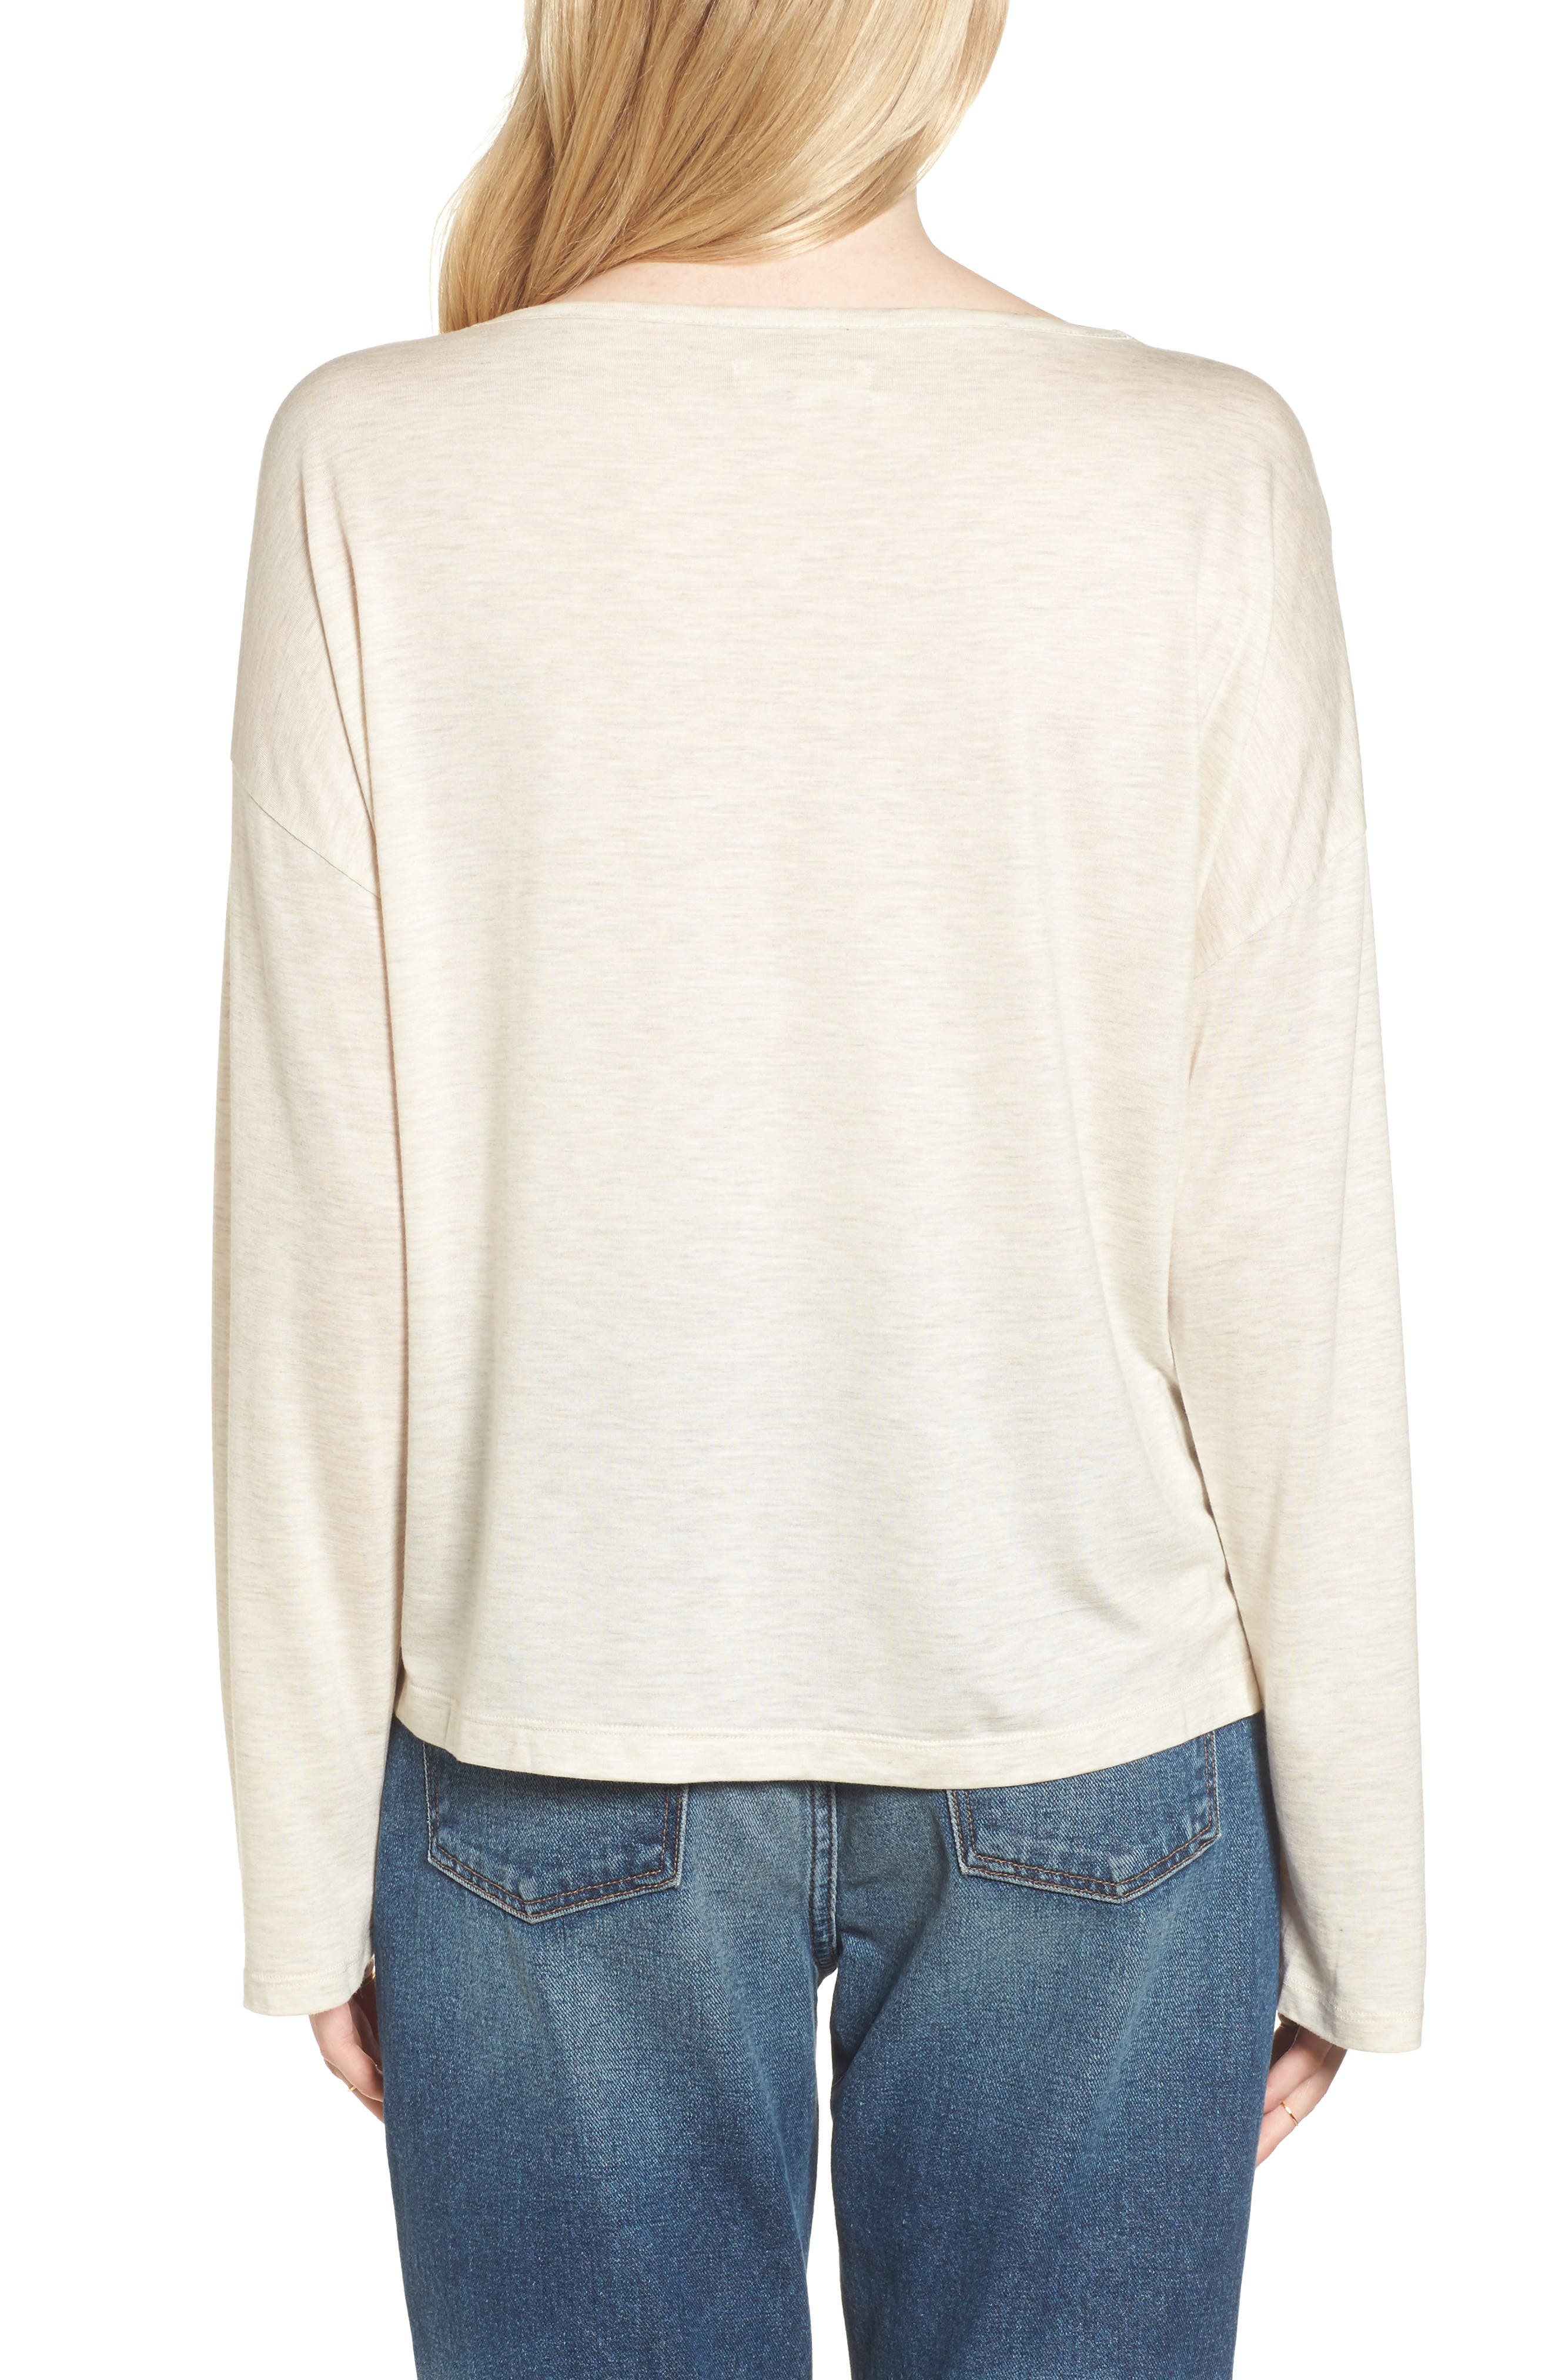 Libretto Wide Sleeve Top,                             Alternate thumbnail 7, color,